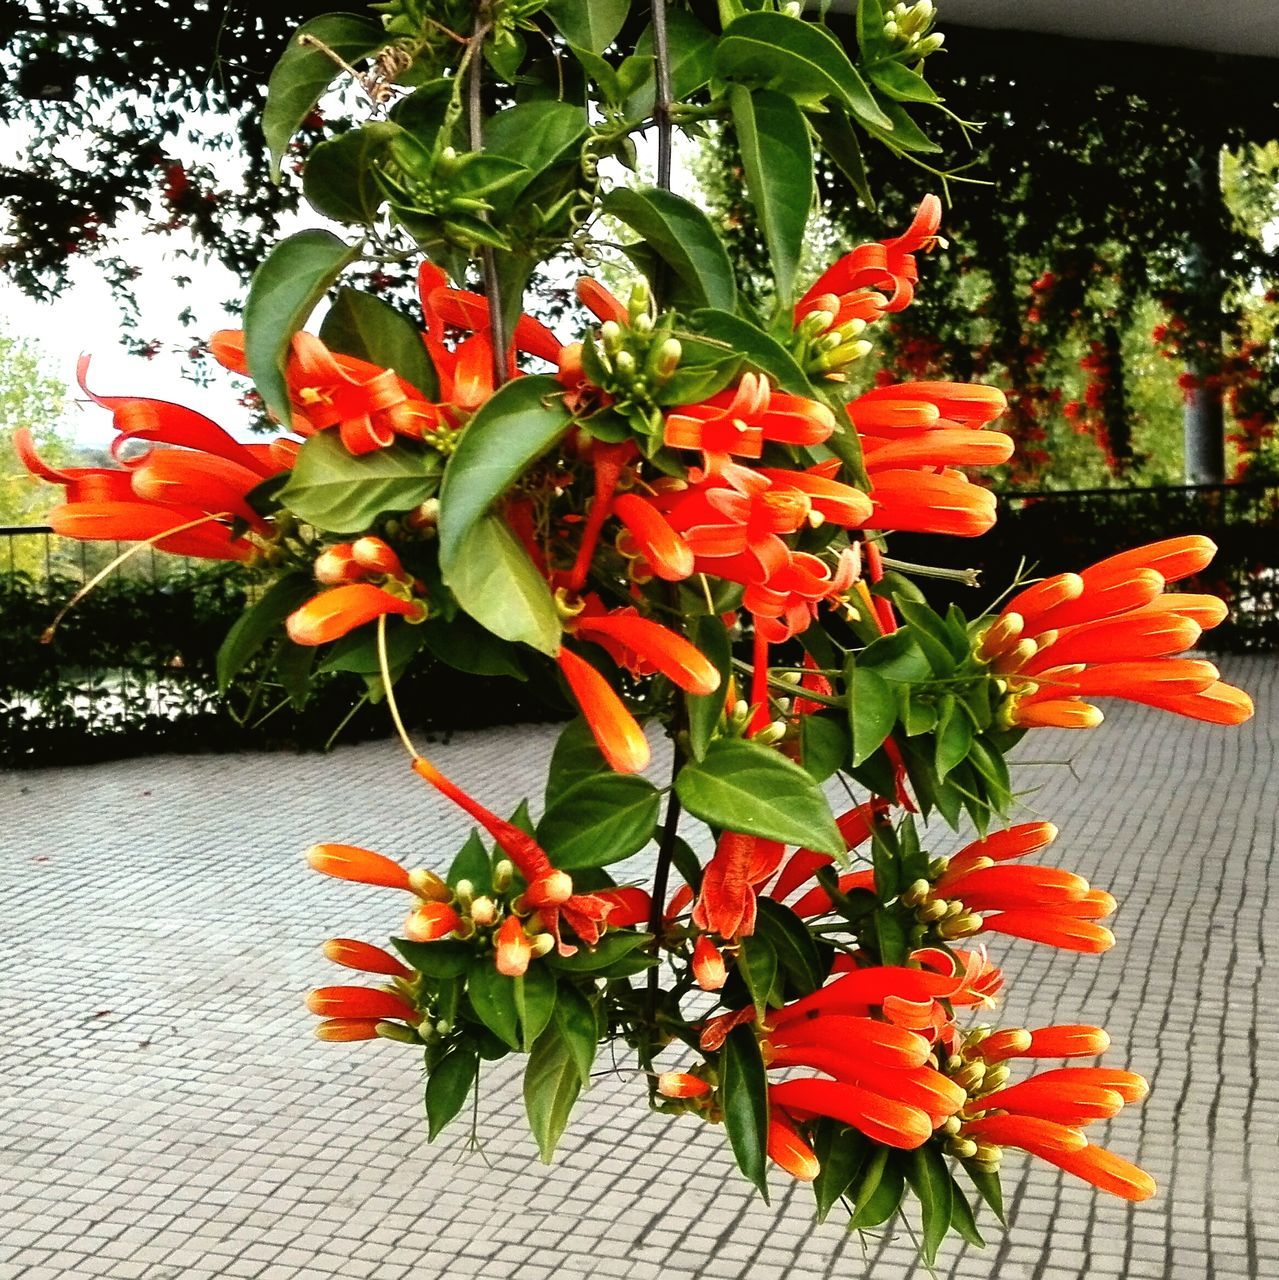 flower, orange color, growth, plant, petal, no people, outdoors, day, freshness, fragility, leaf, beauty in nature, nature, red, flower head, close-up, blooming